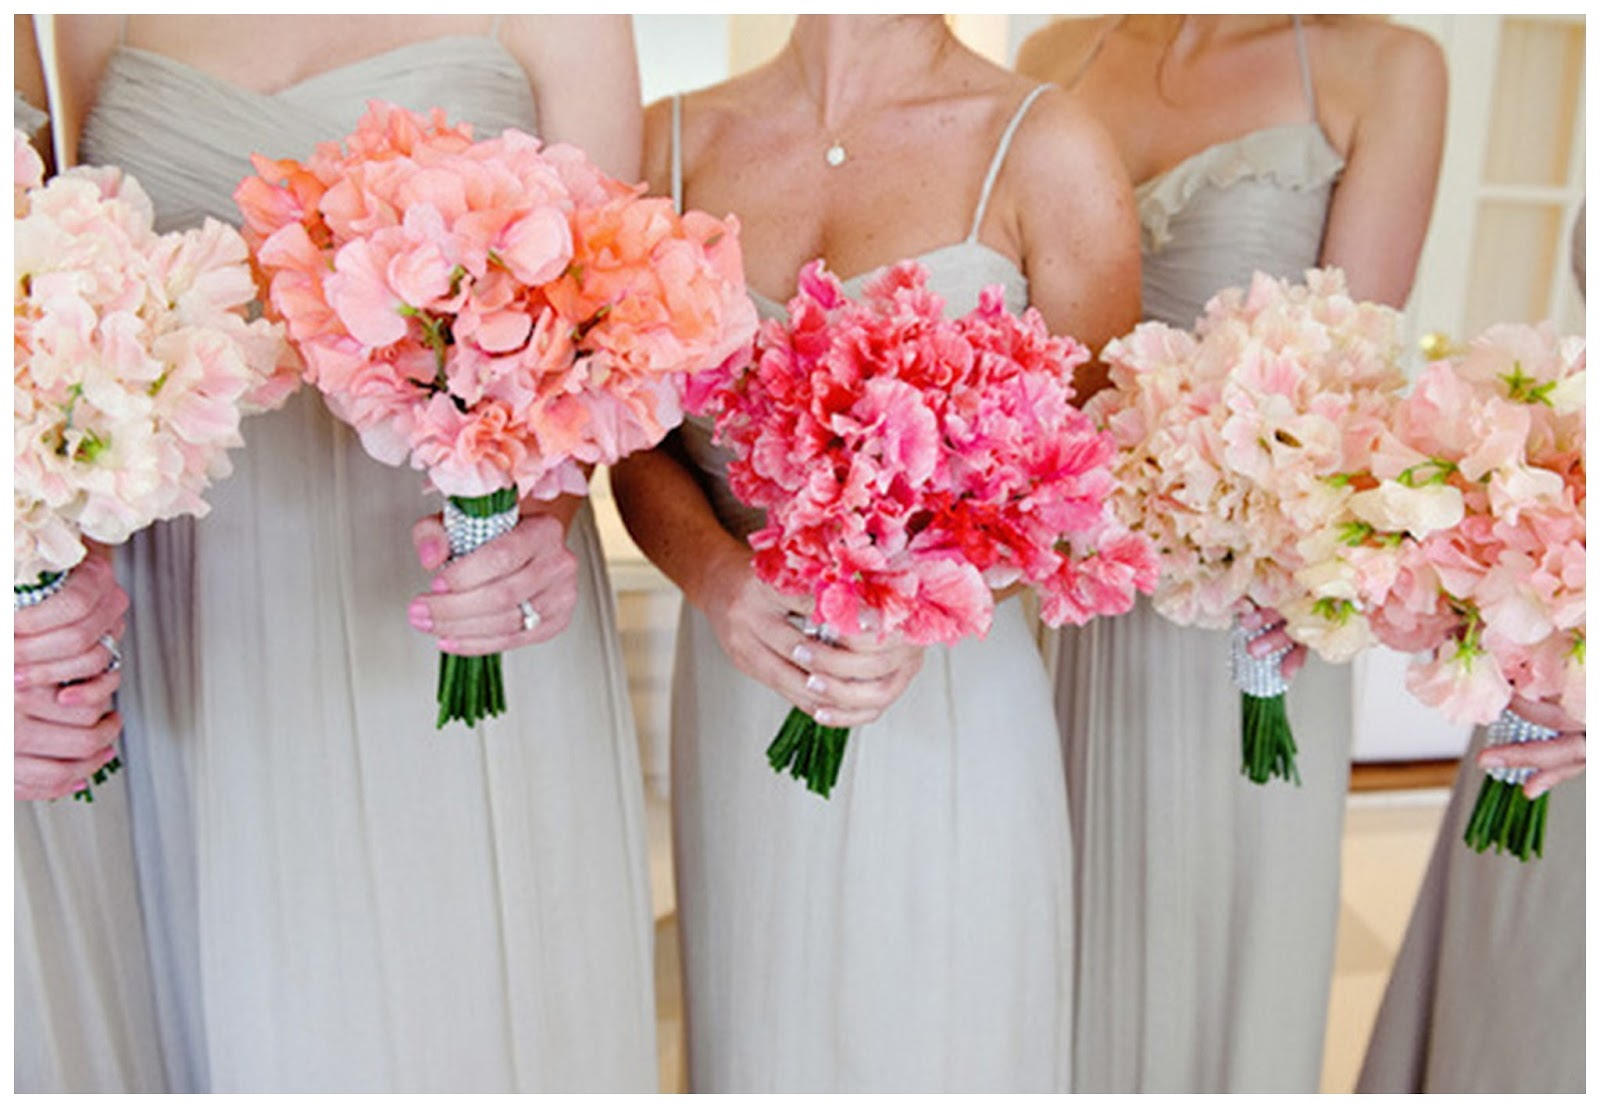 Before The Big Day: Flowers